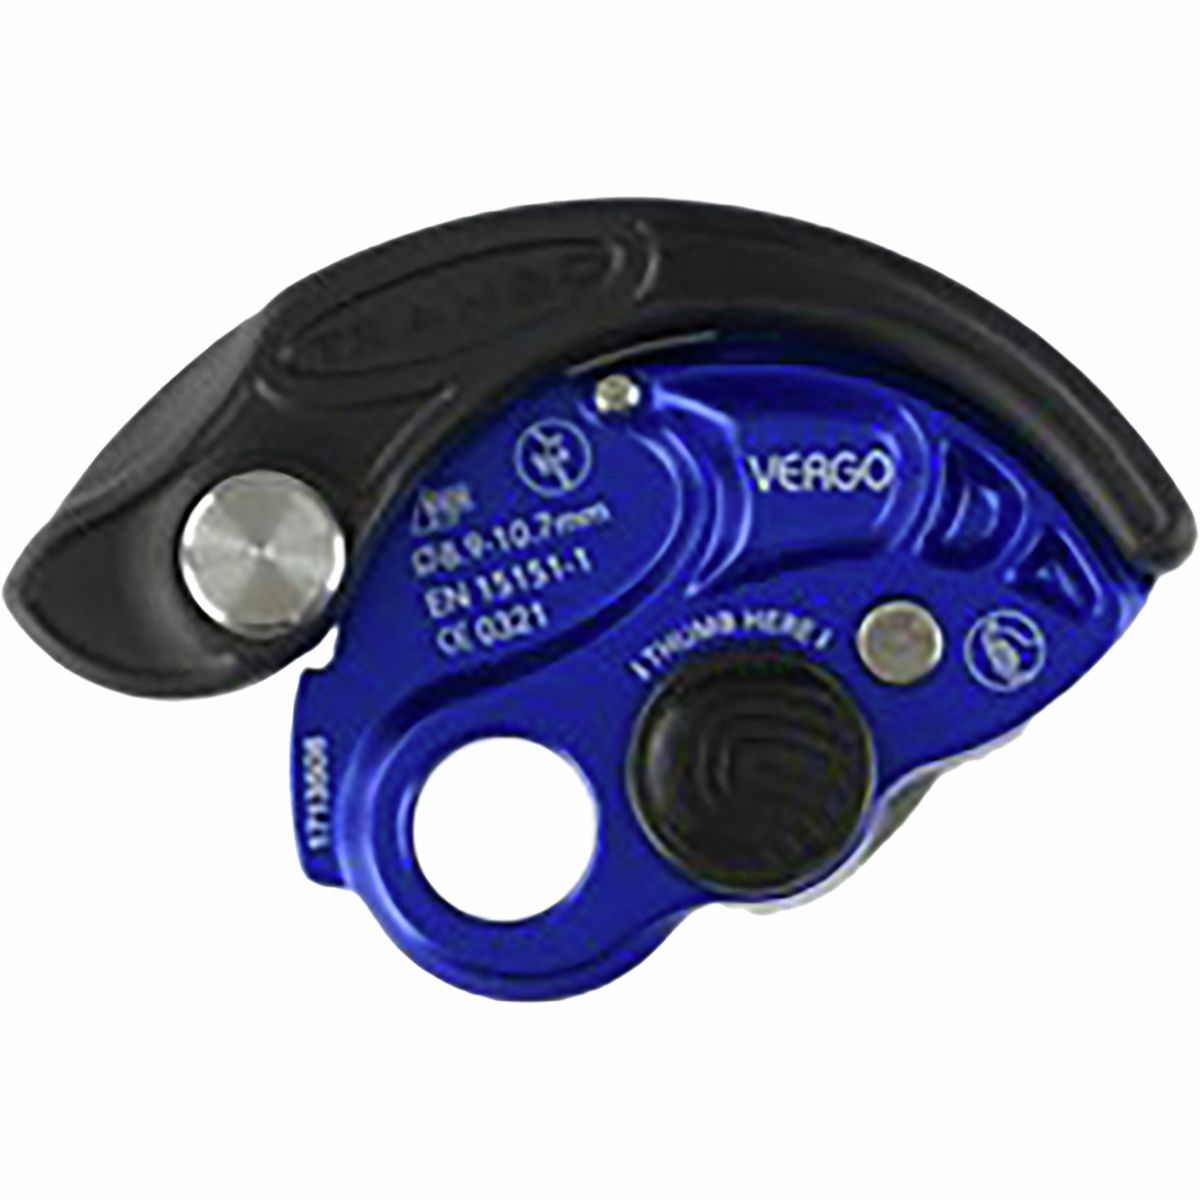 photo: Trango Vergo belay/rappel device